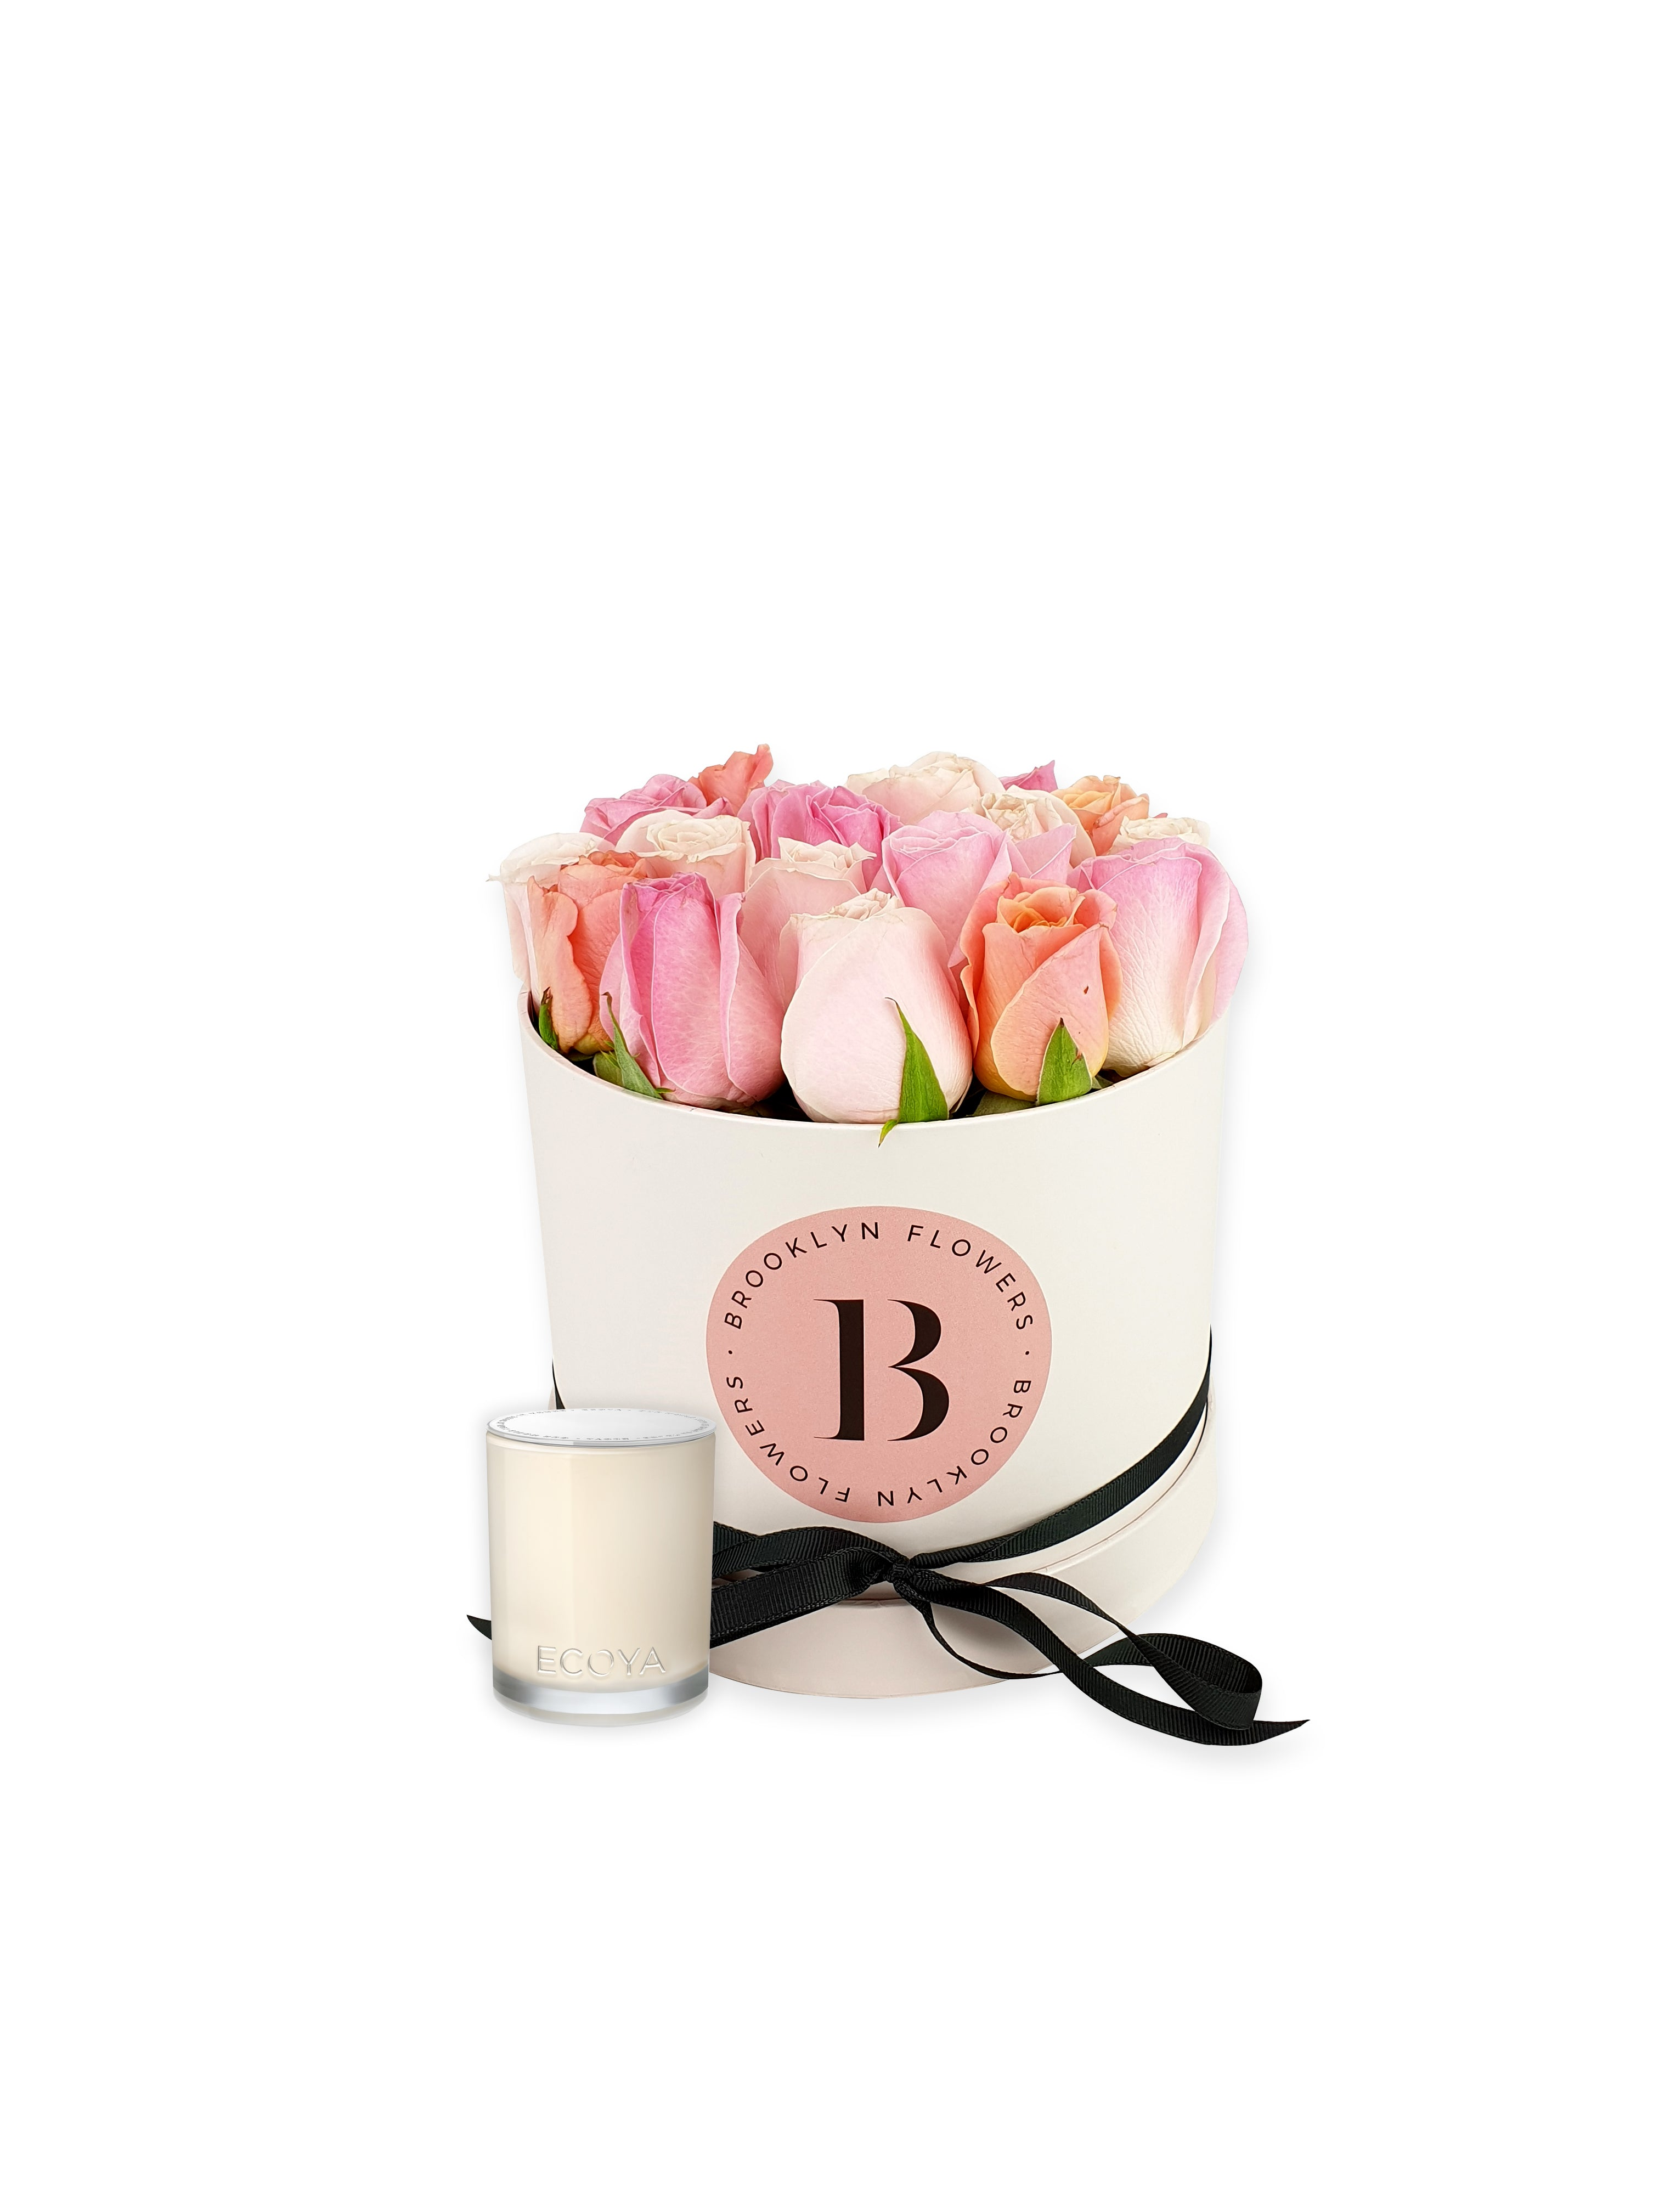 The Brooklyn Rose Box & Candle Gift Package